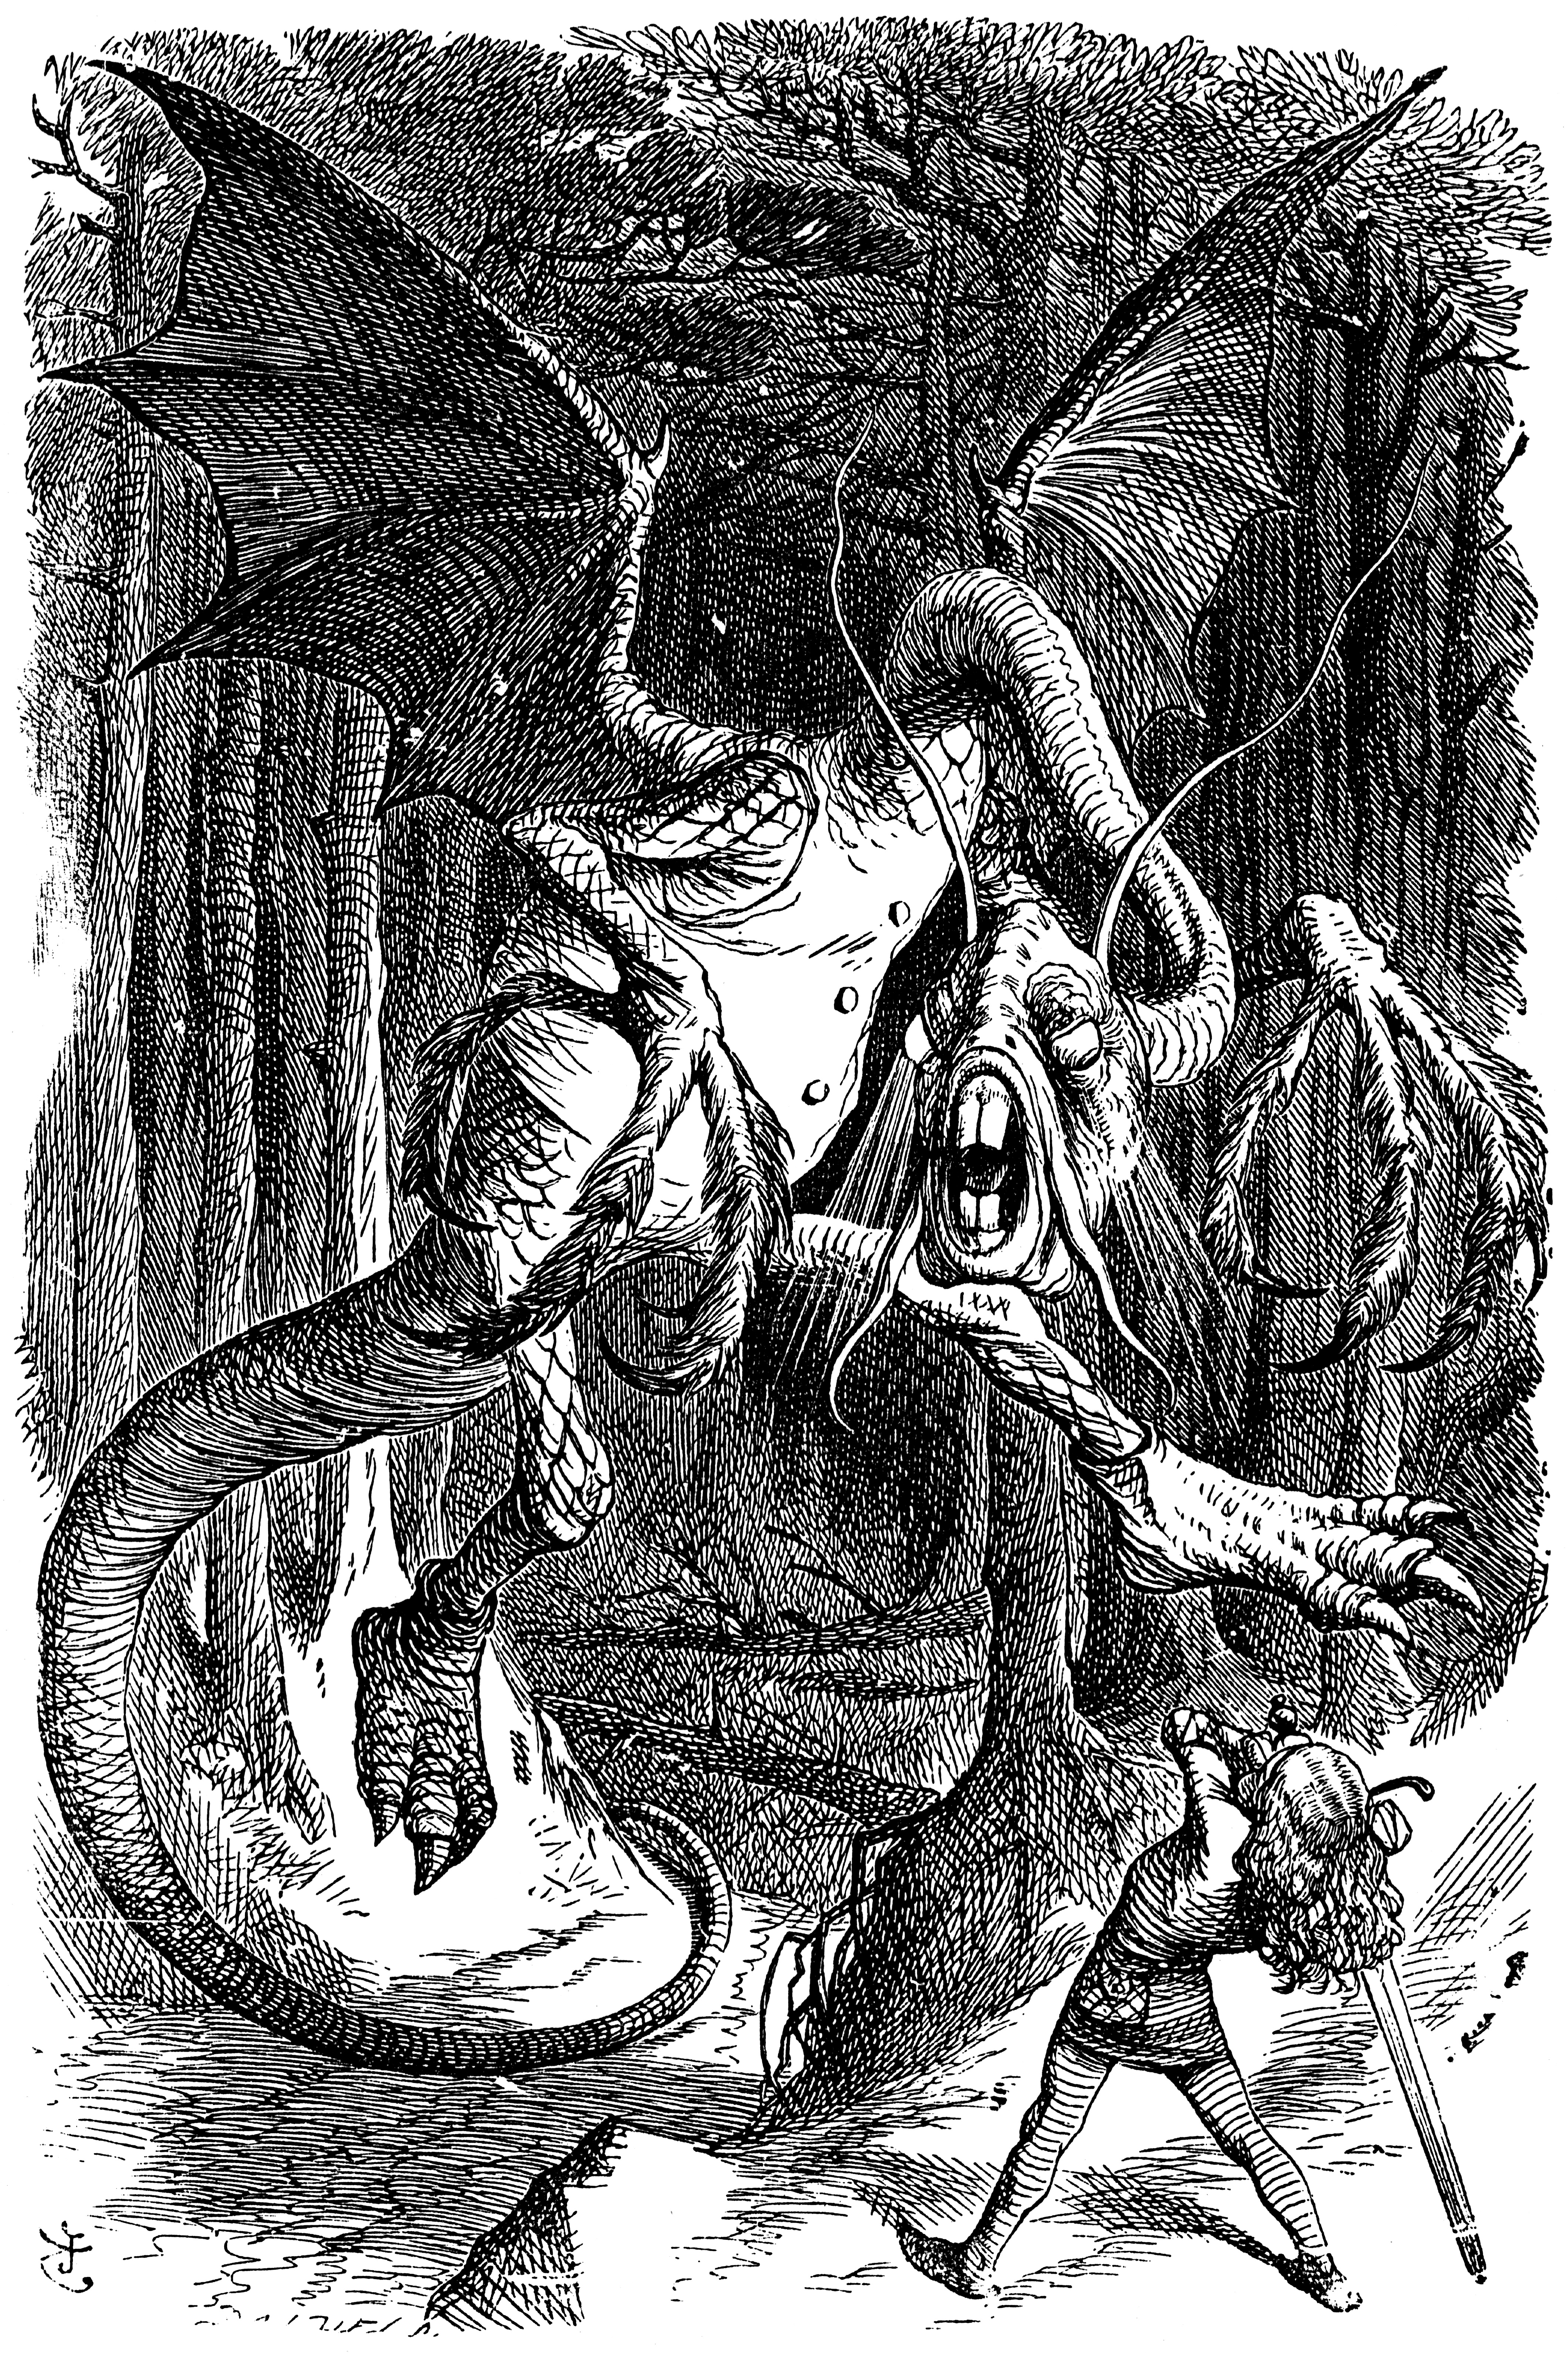 Illustration of the Jabberwock by Sir John Tenniel